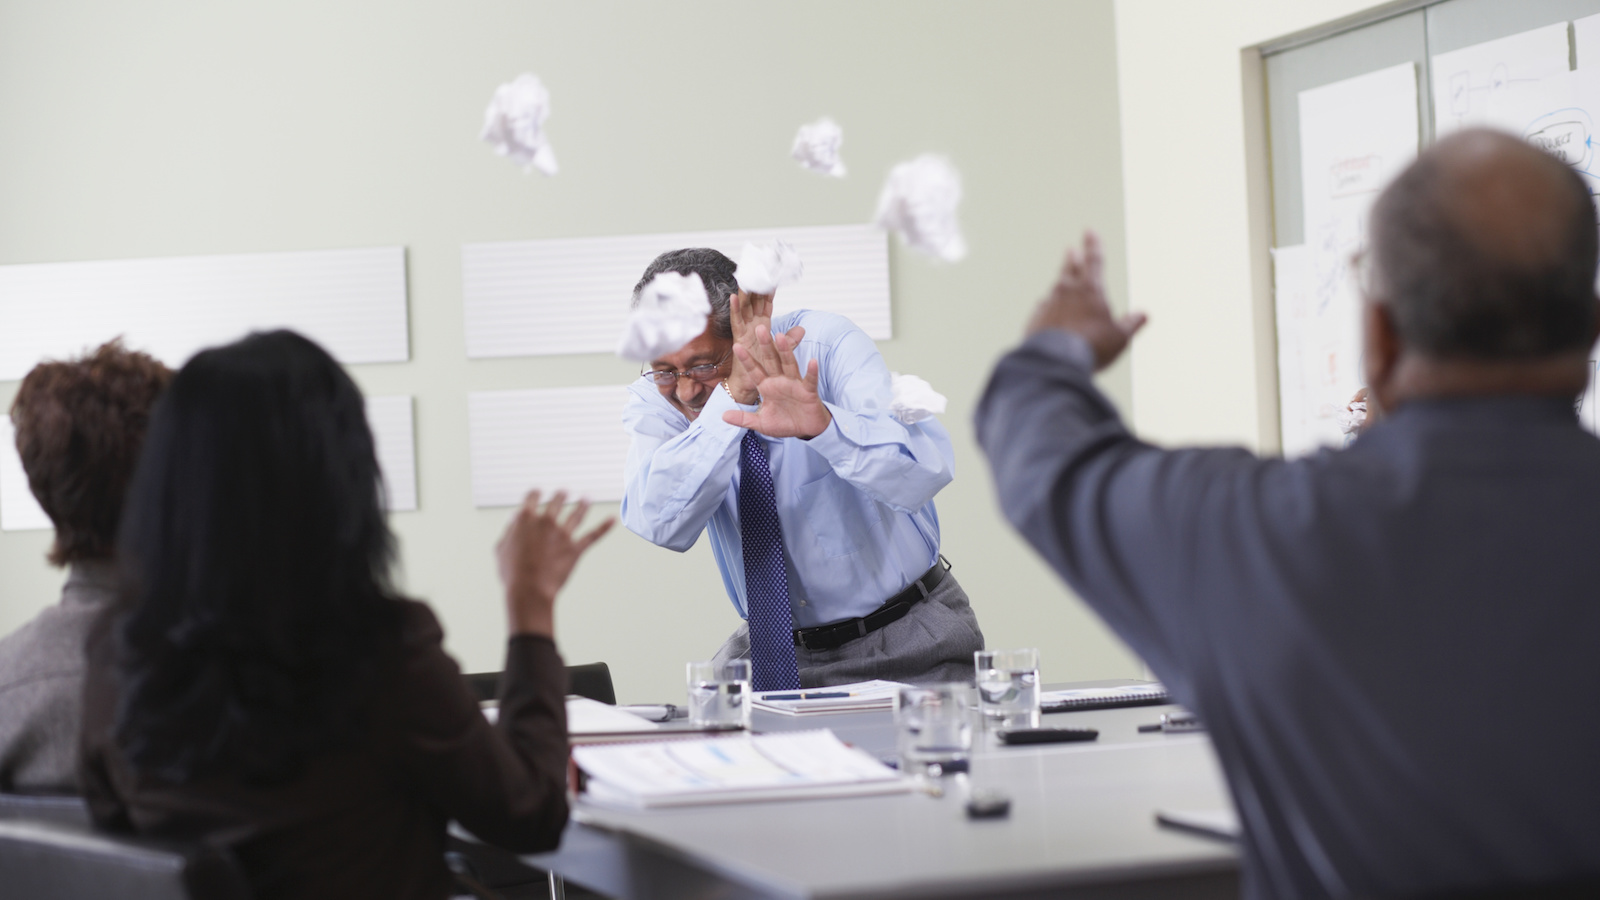 Businessmen throwing paper balls at someone giving a presentation